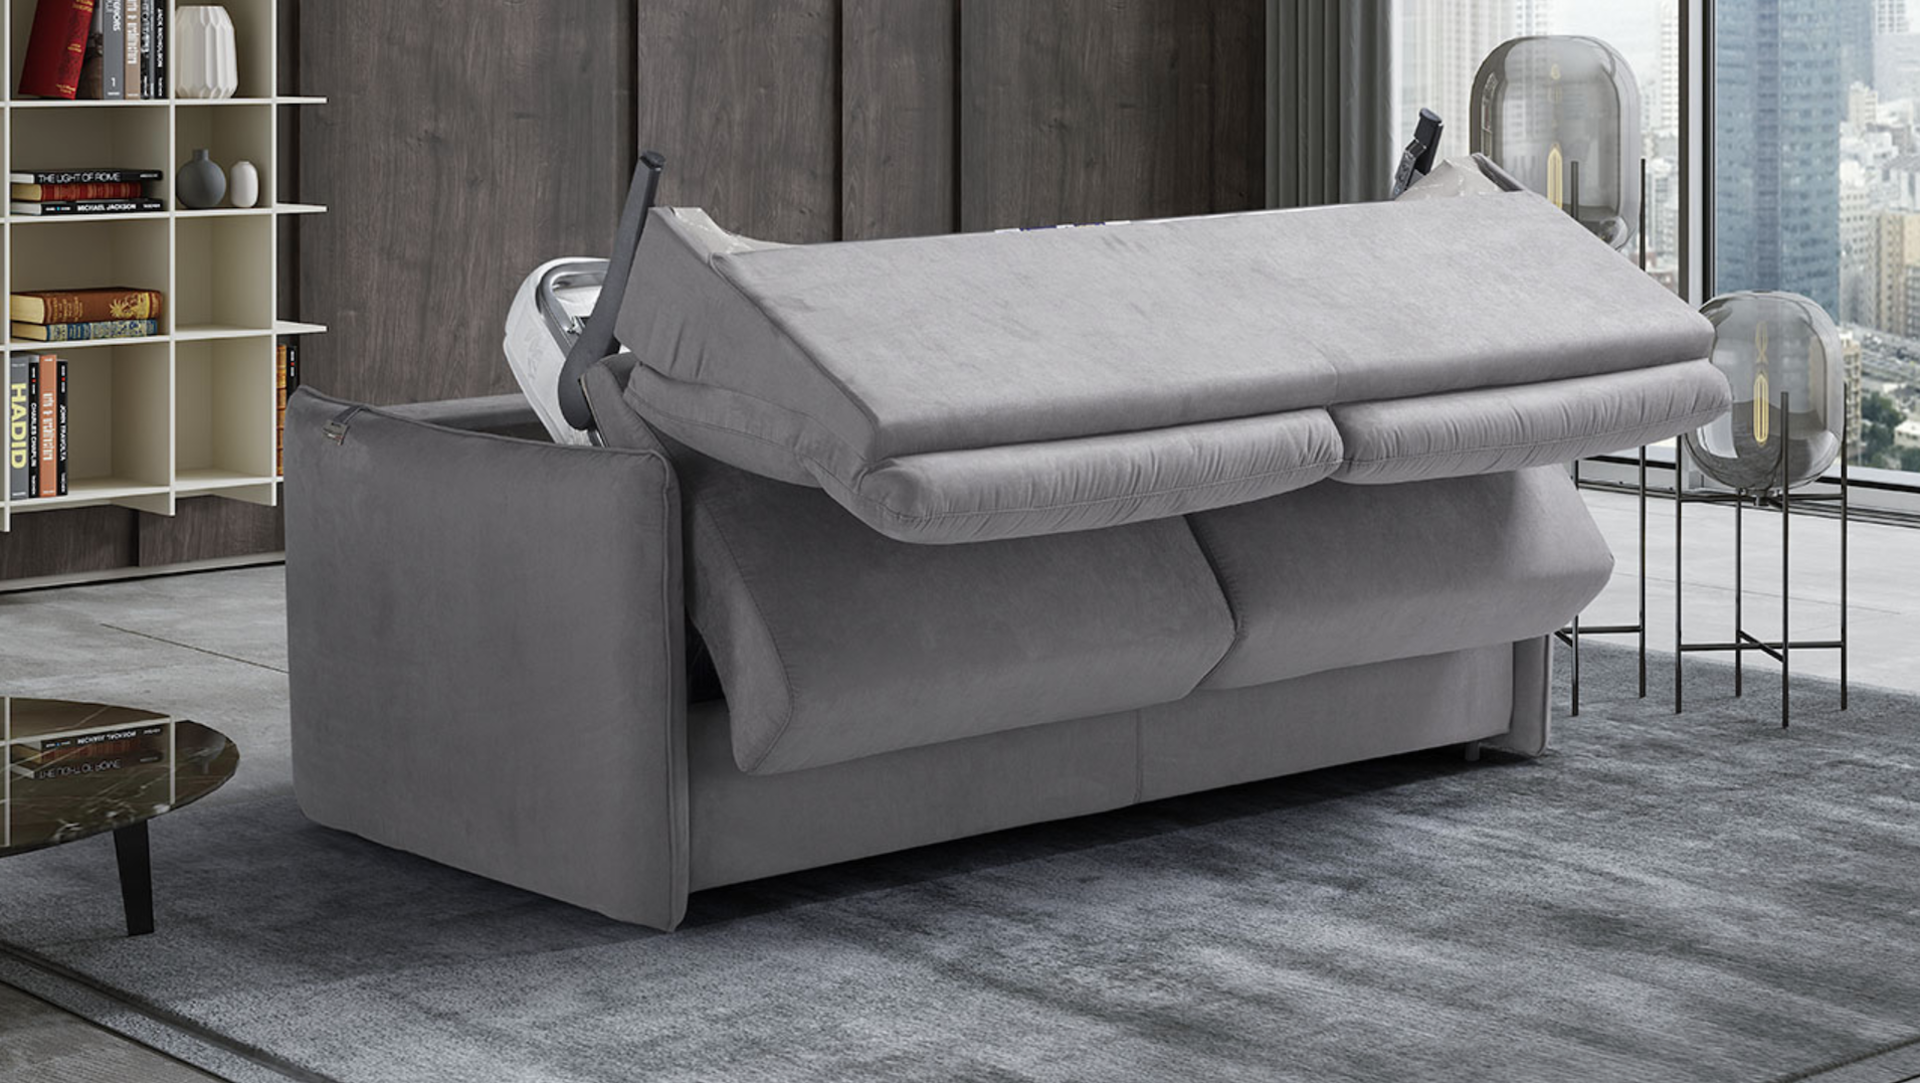 'AIMEE' Italian Crafted 3 Seat Sofa Bed in PLAZA SILVER RRP £1979 - Image 2 of 5